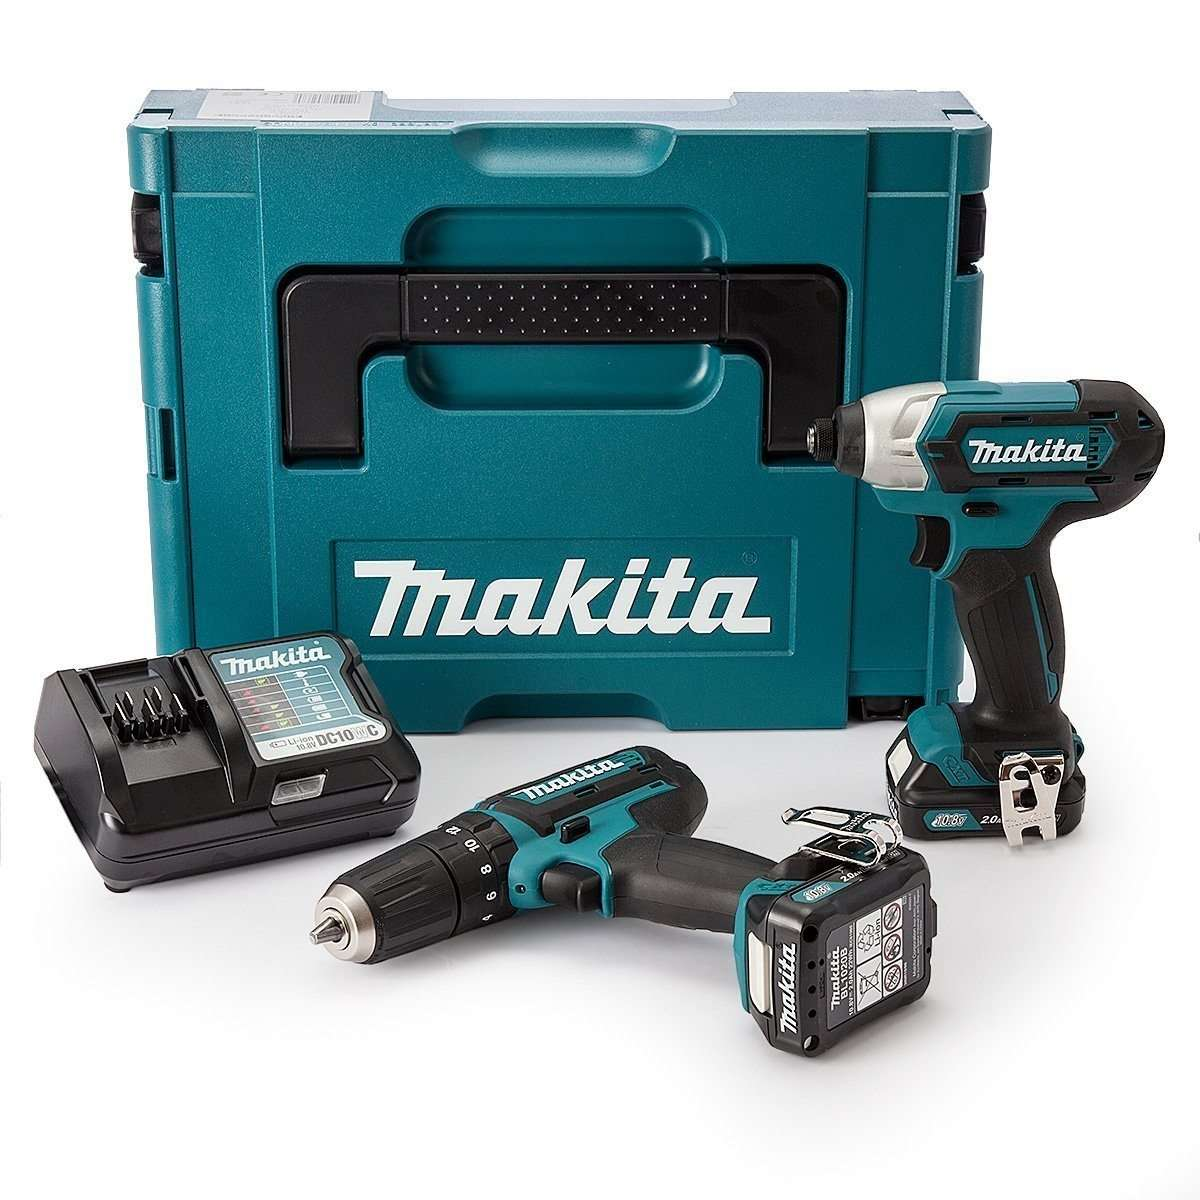 Makita CLX202AJ Drill Kit Review